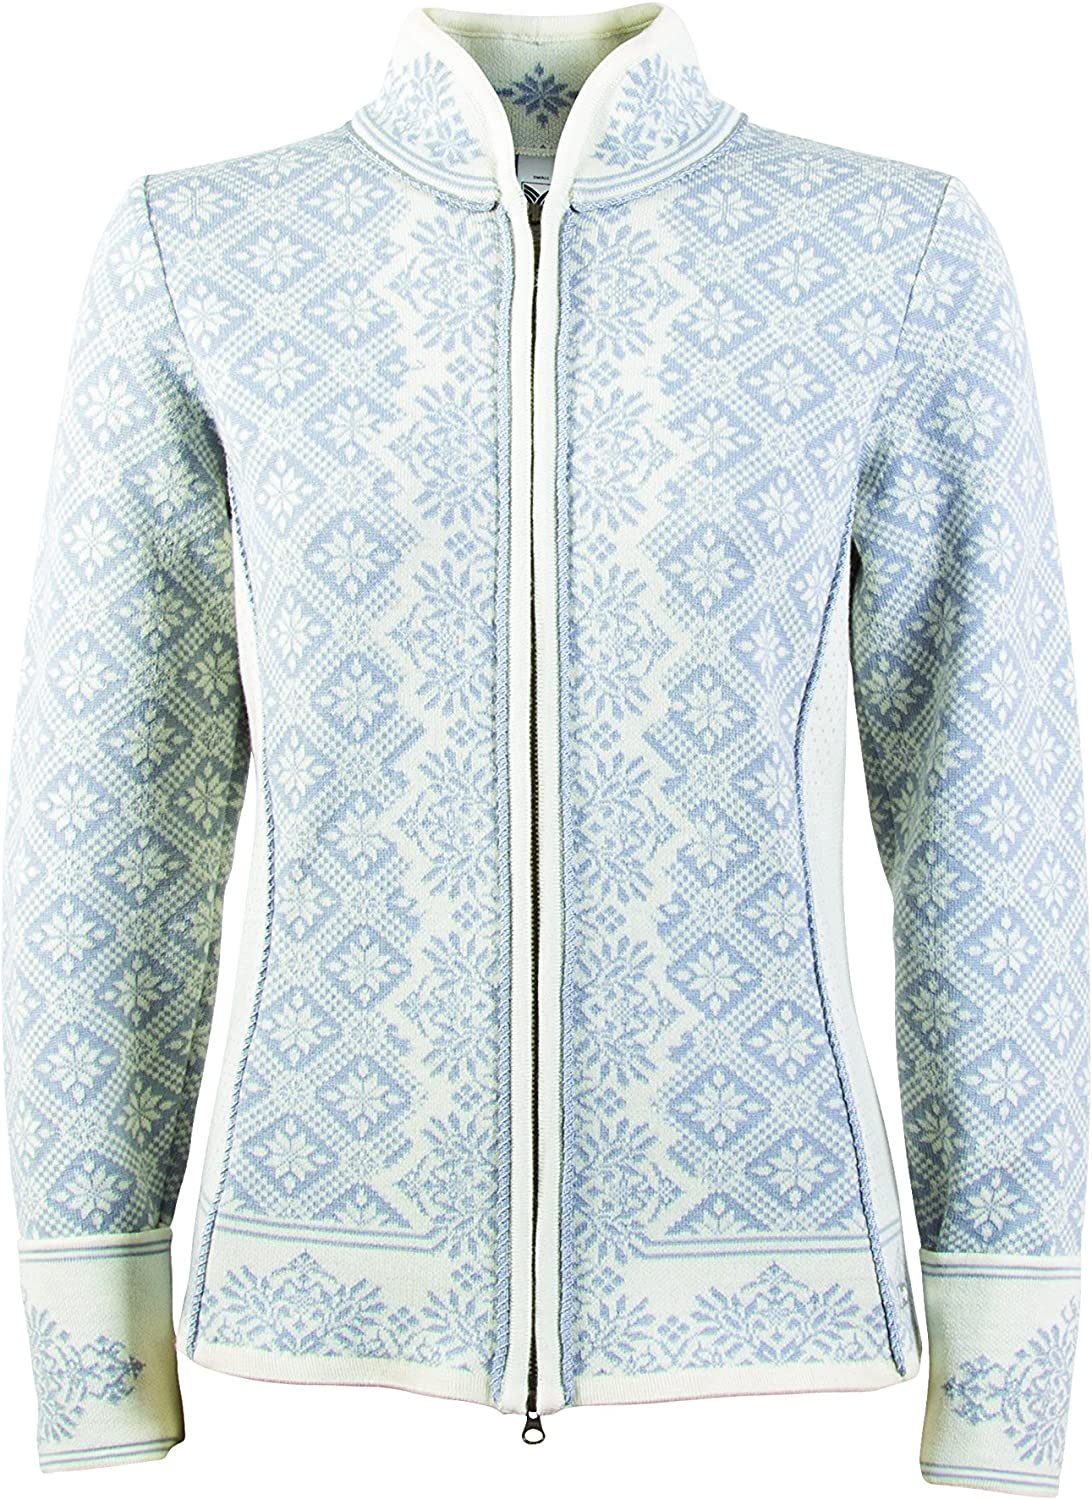 Dale of Norway Reservation Classic Purchase Women's